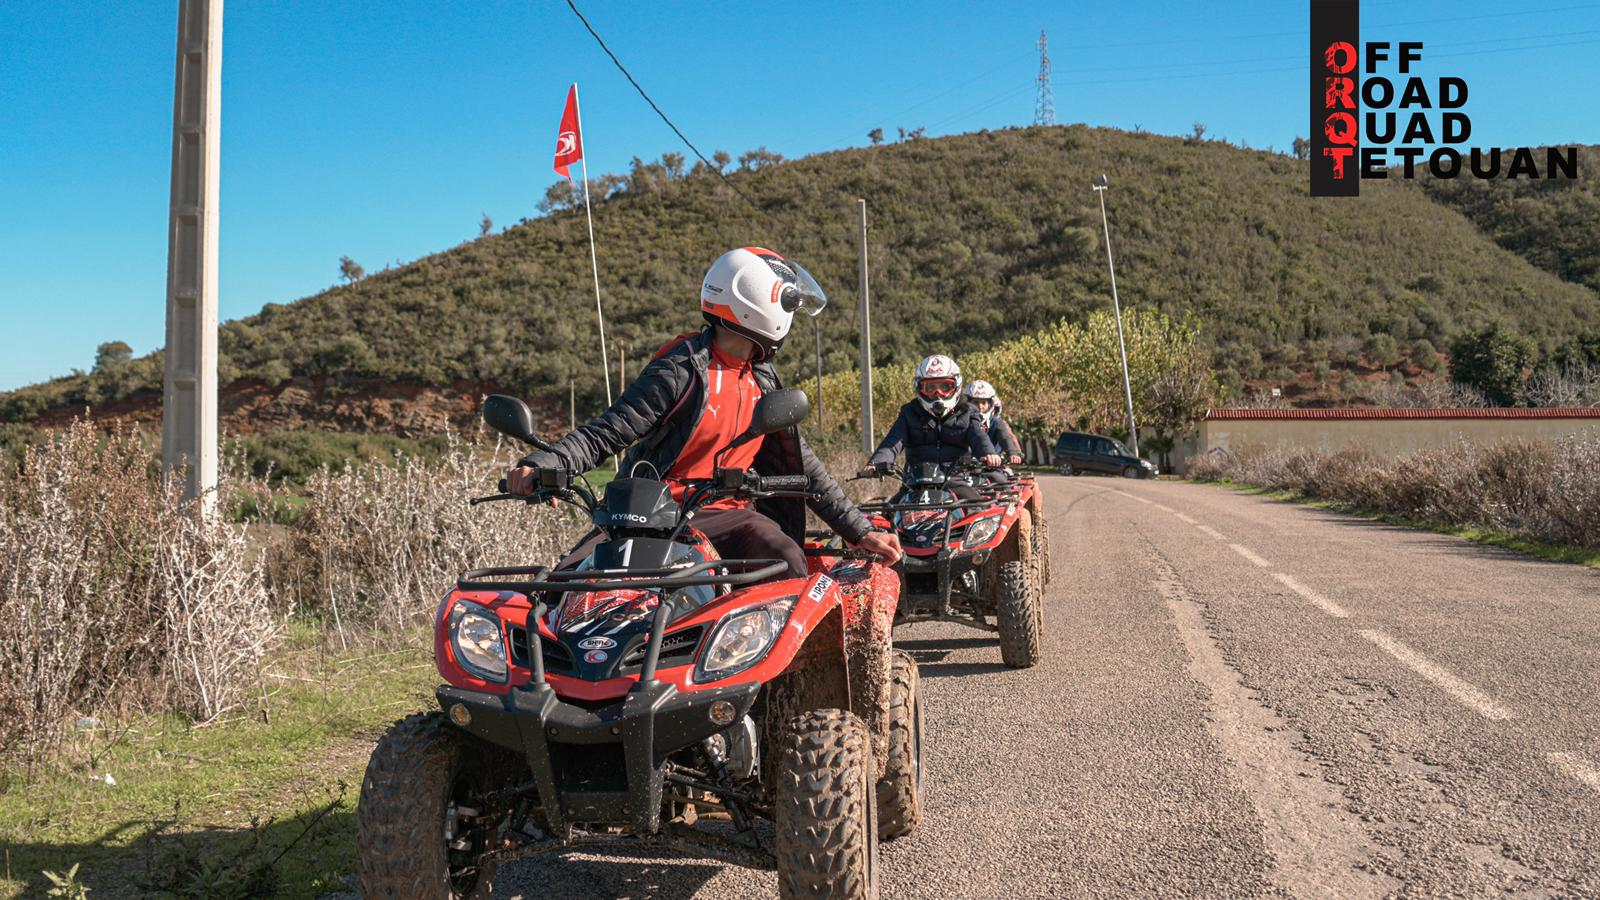 off road quad tétouan